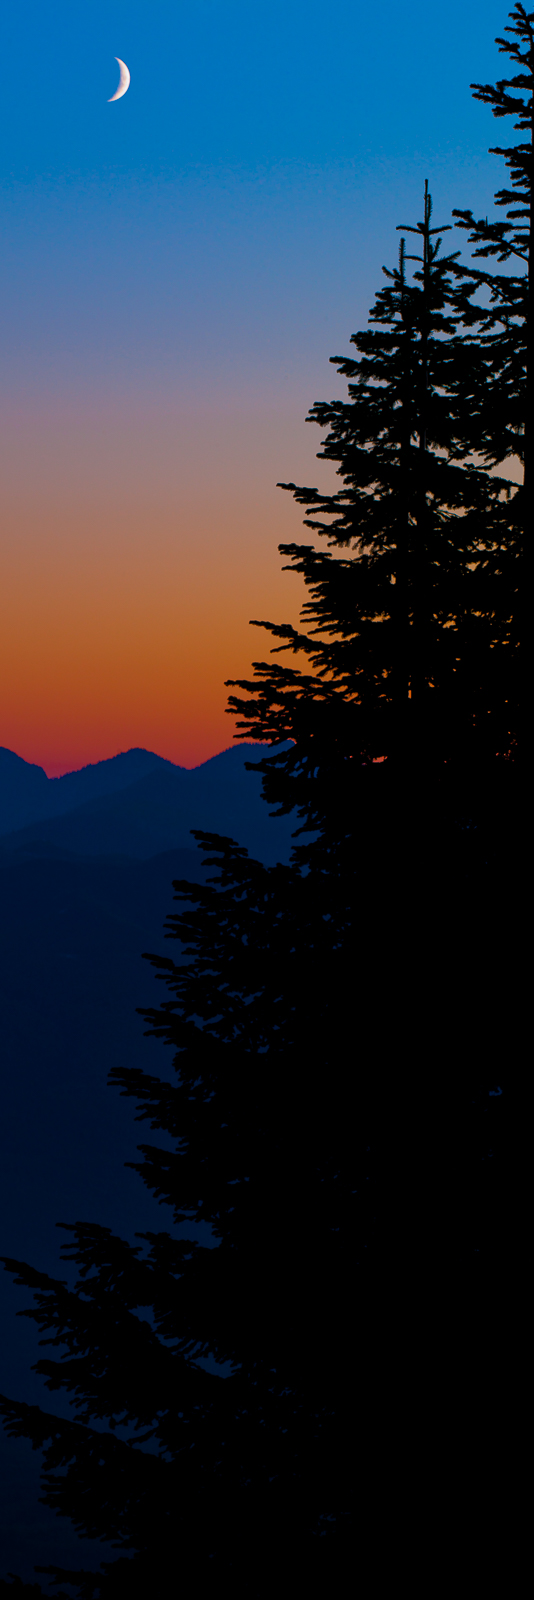 Moon,Panoramic,Sunset,Trees,Vertical,Washington,mountains,Mount Baker-Snoqualmie, National Forest,Crescent, photo